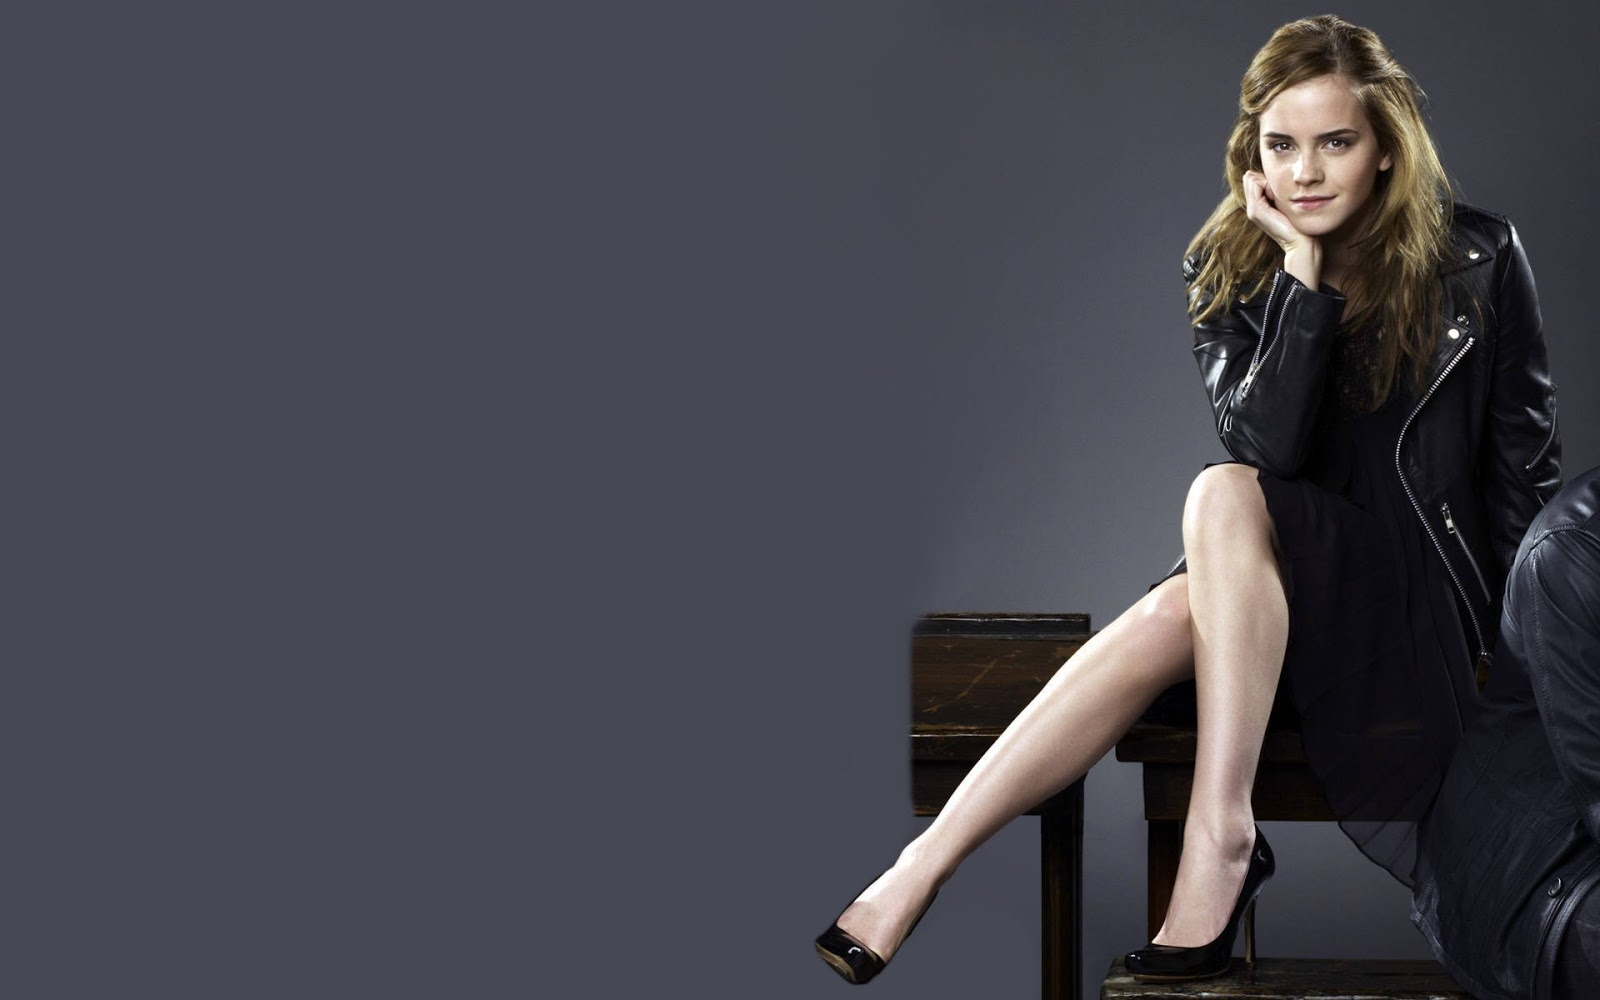 emma watson new hd wallpapers 2013 ~ hot celebrity: emma stone